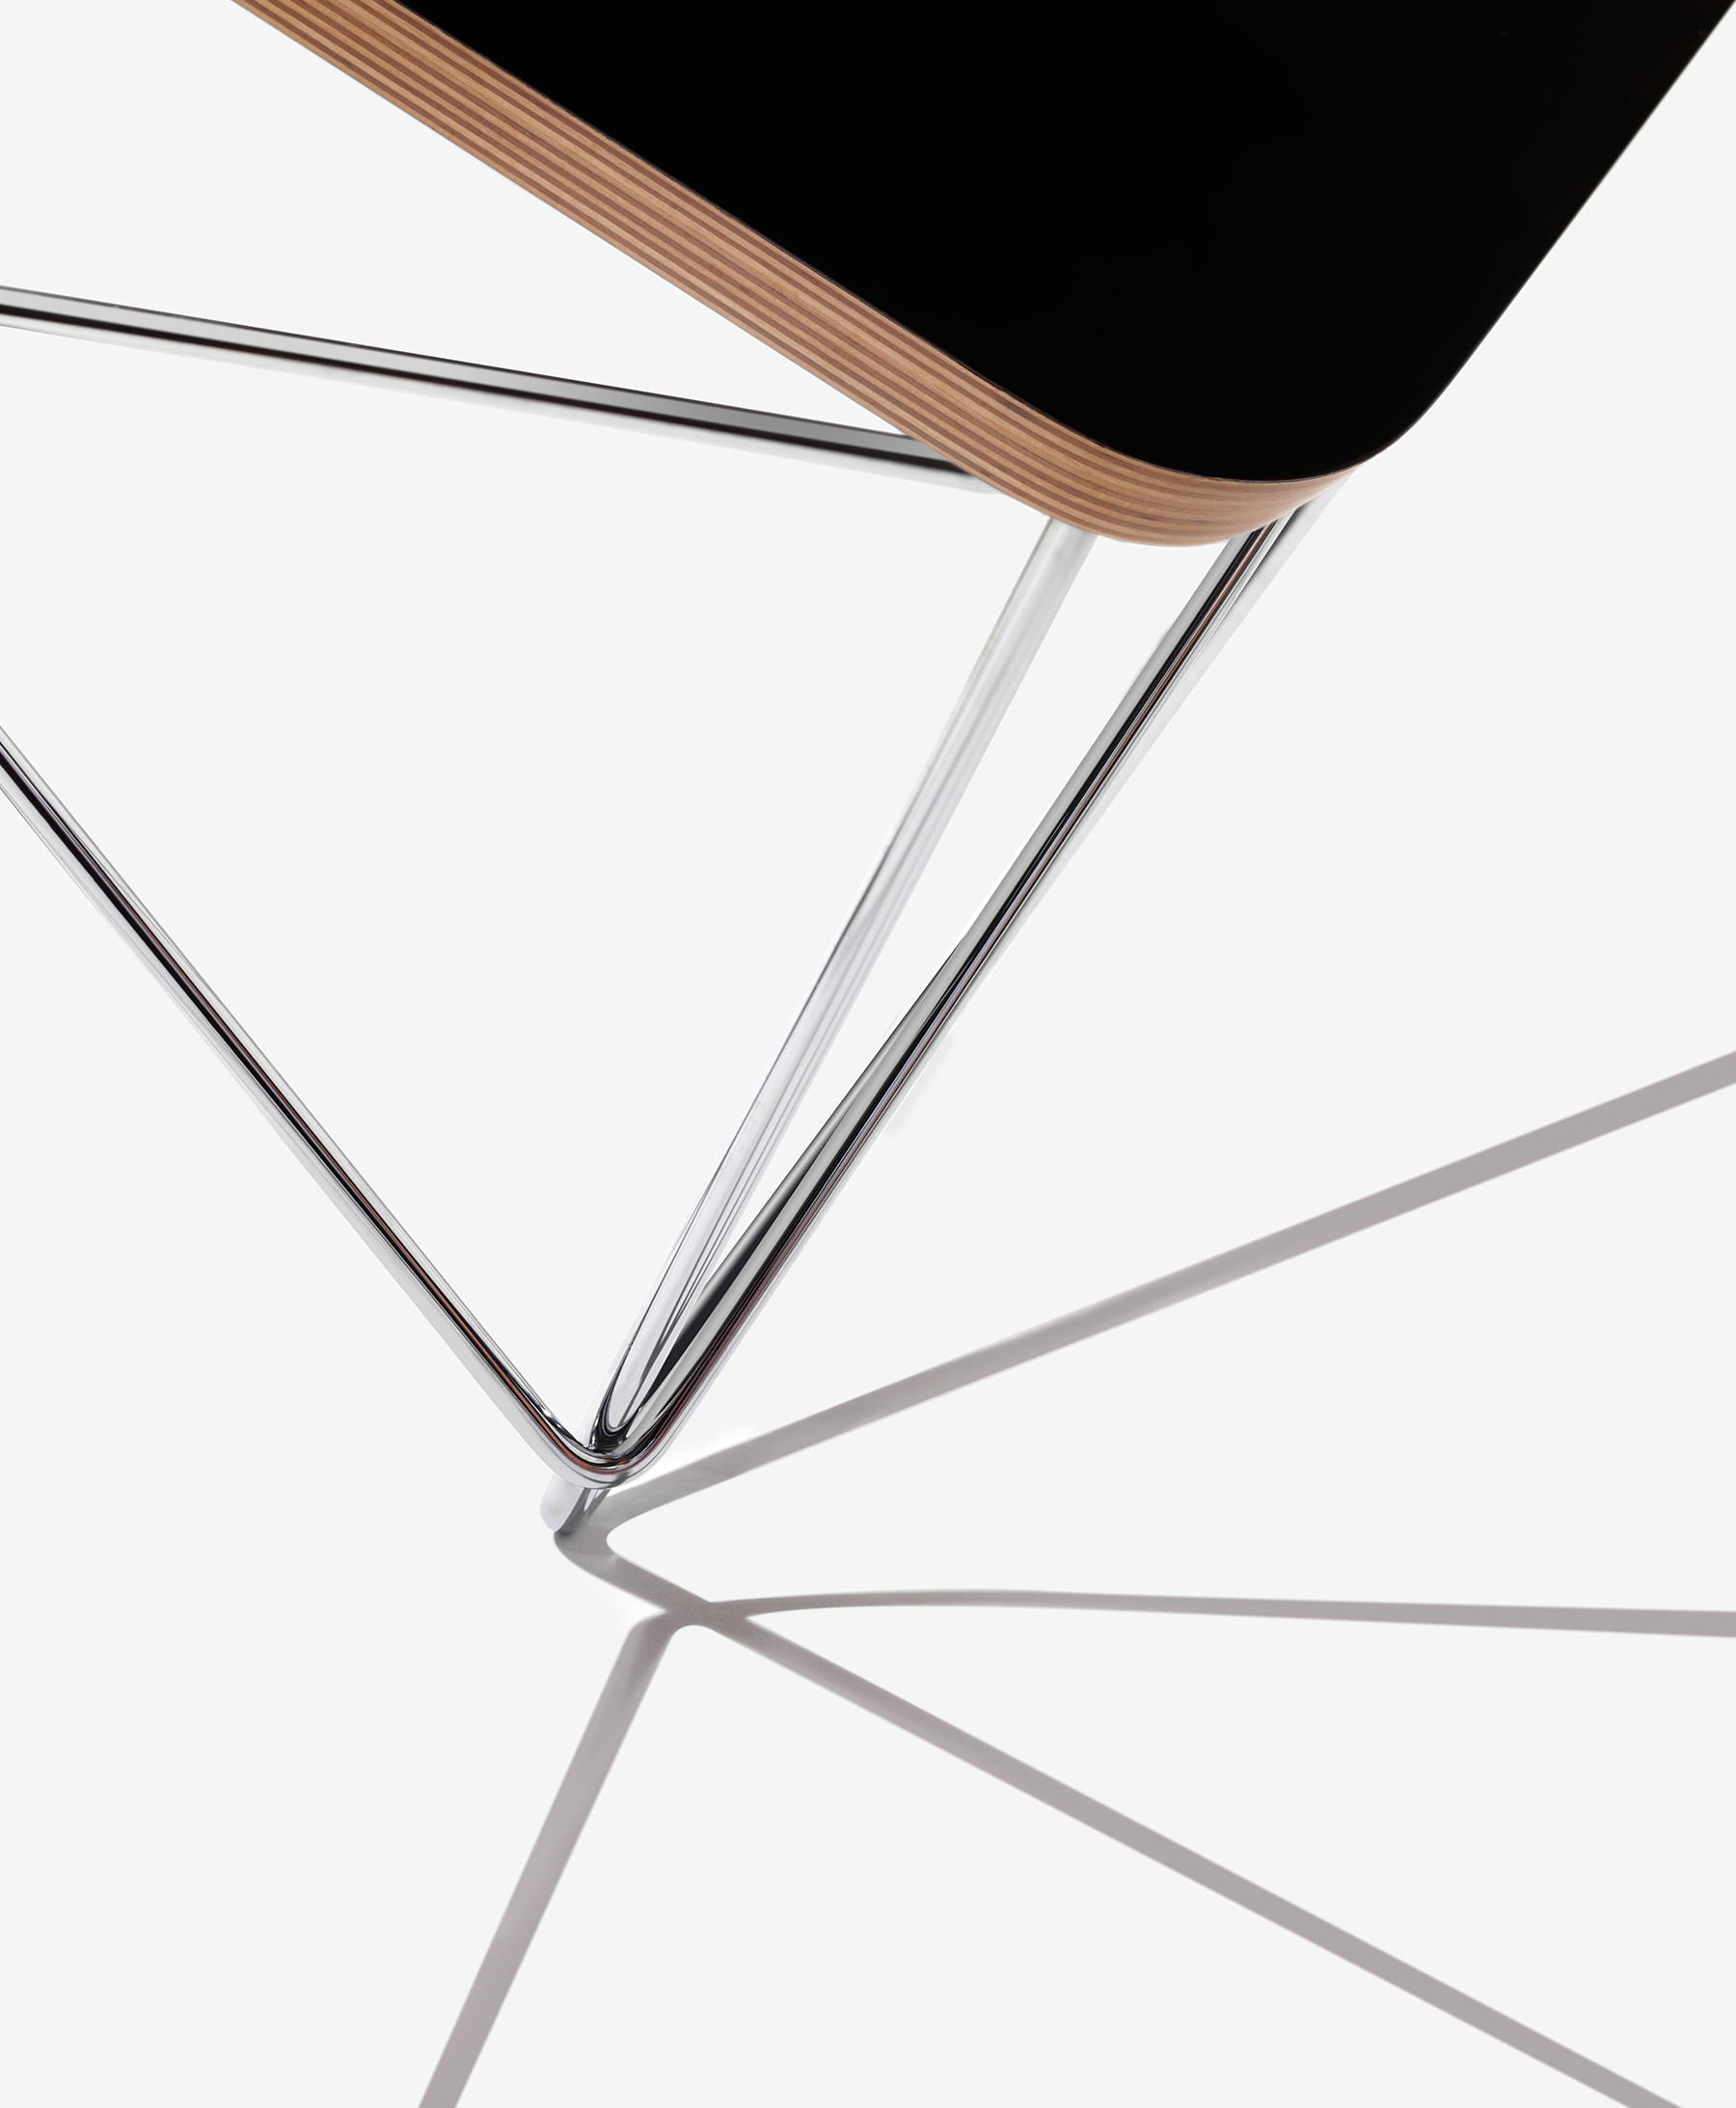 Vitra, Eames, table, design